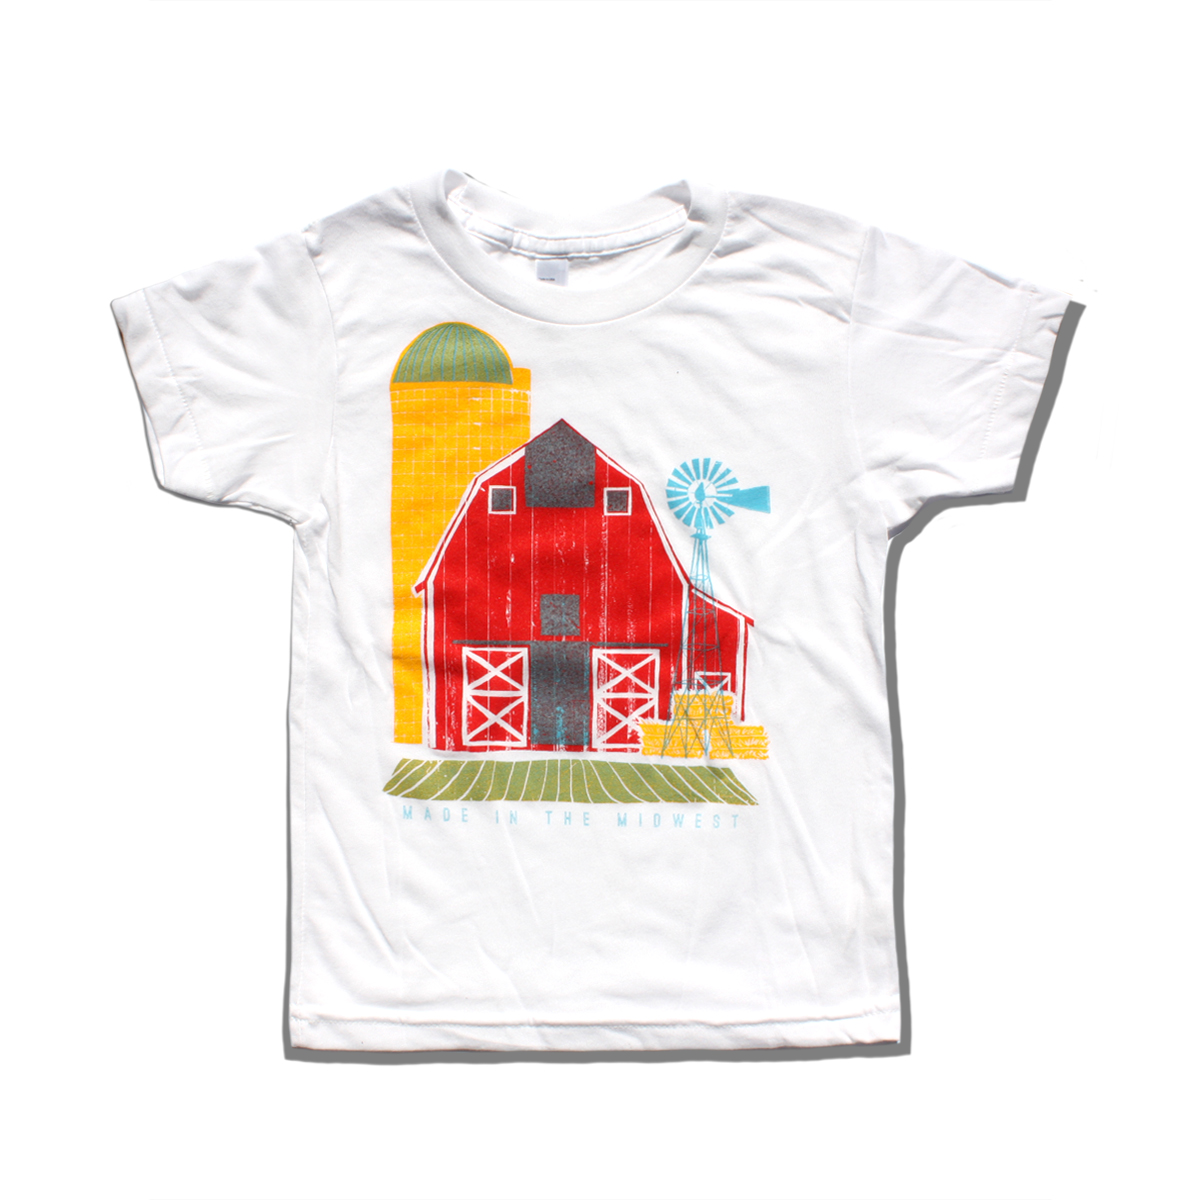 Made In The Midwest Kids T Shirt Bozz Prints